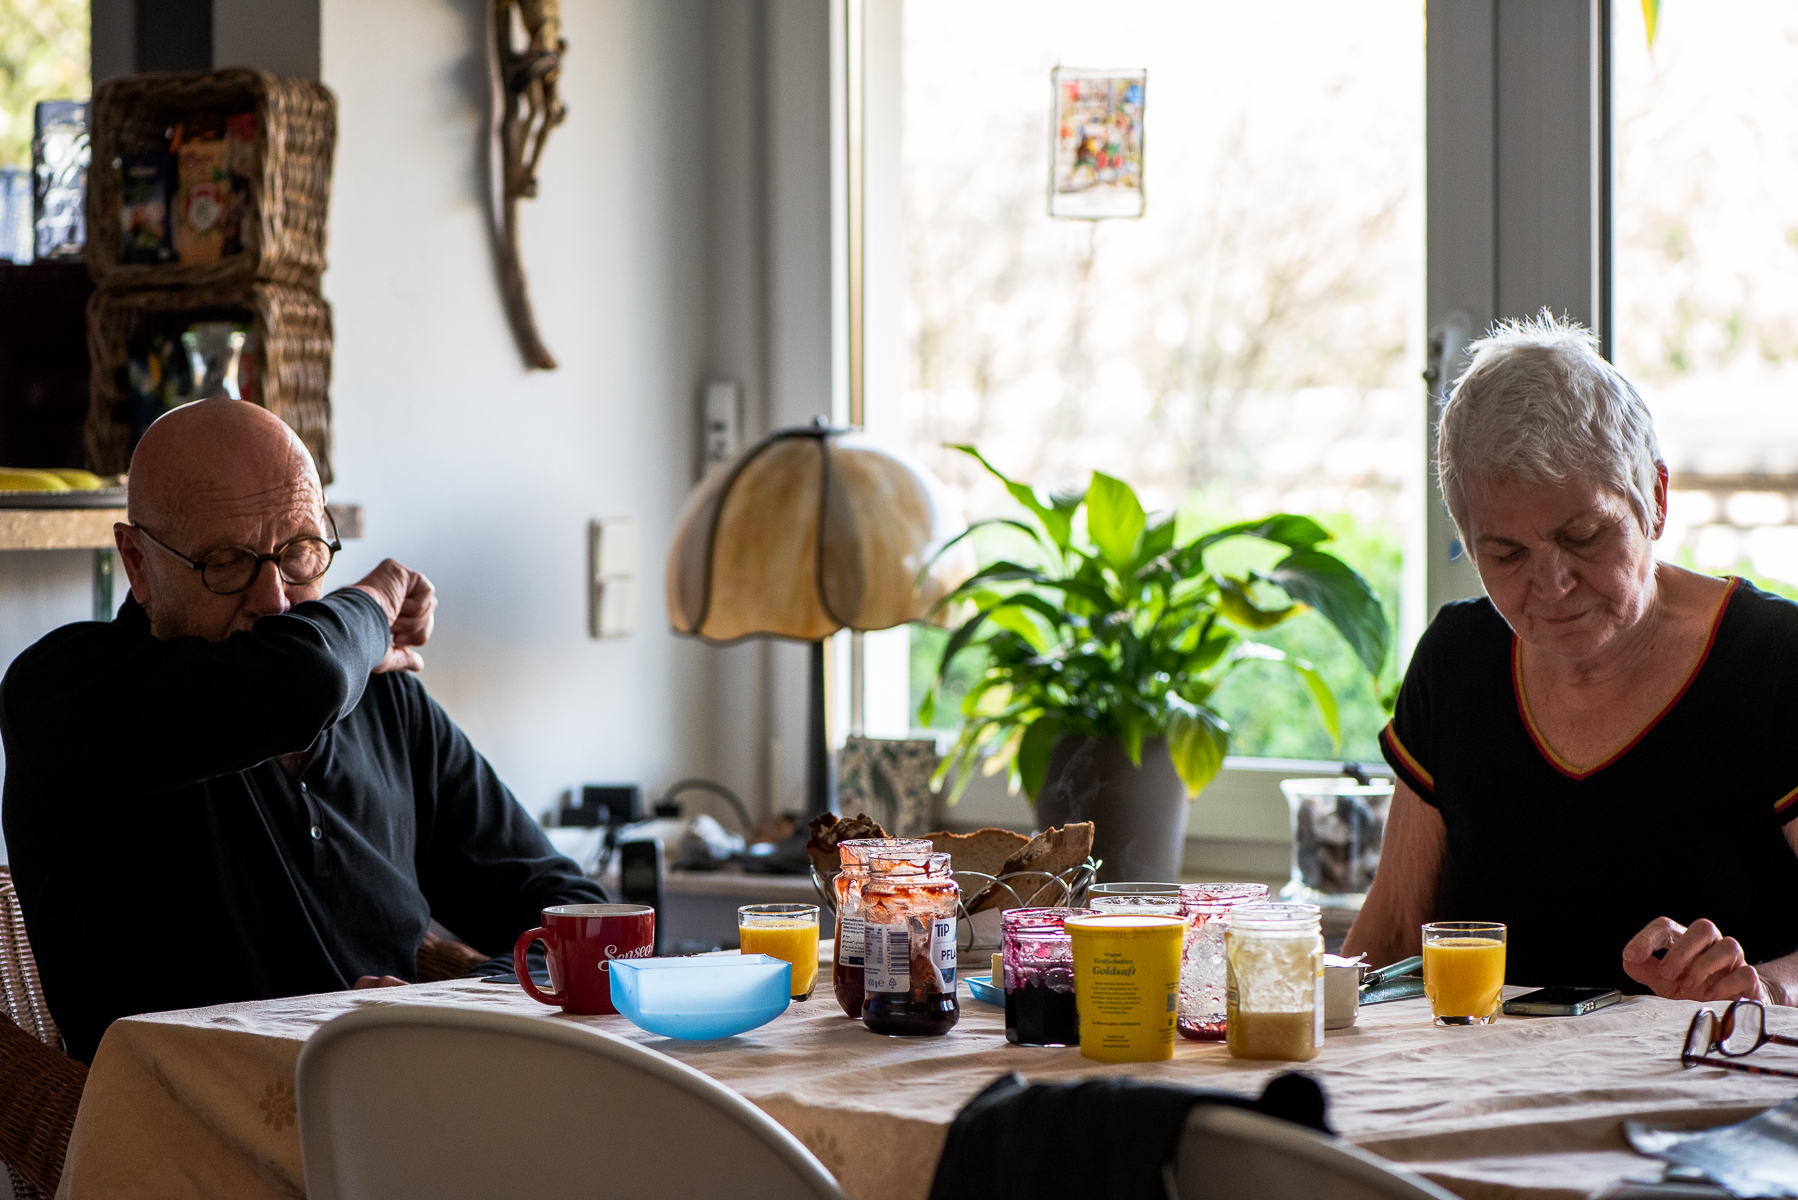 Mom and dad have breakfast at home. Oberhausen, Germany, March 28, 2020